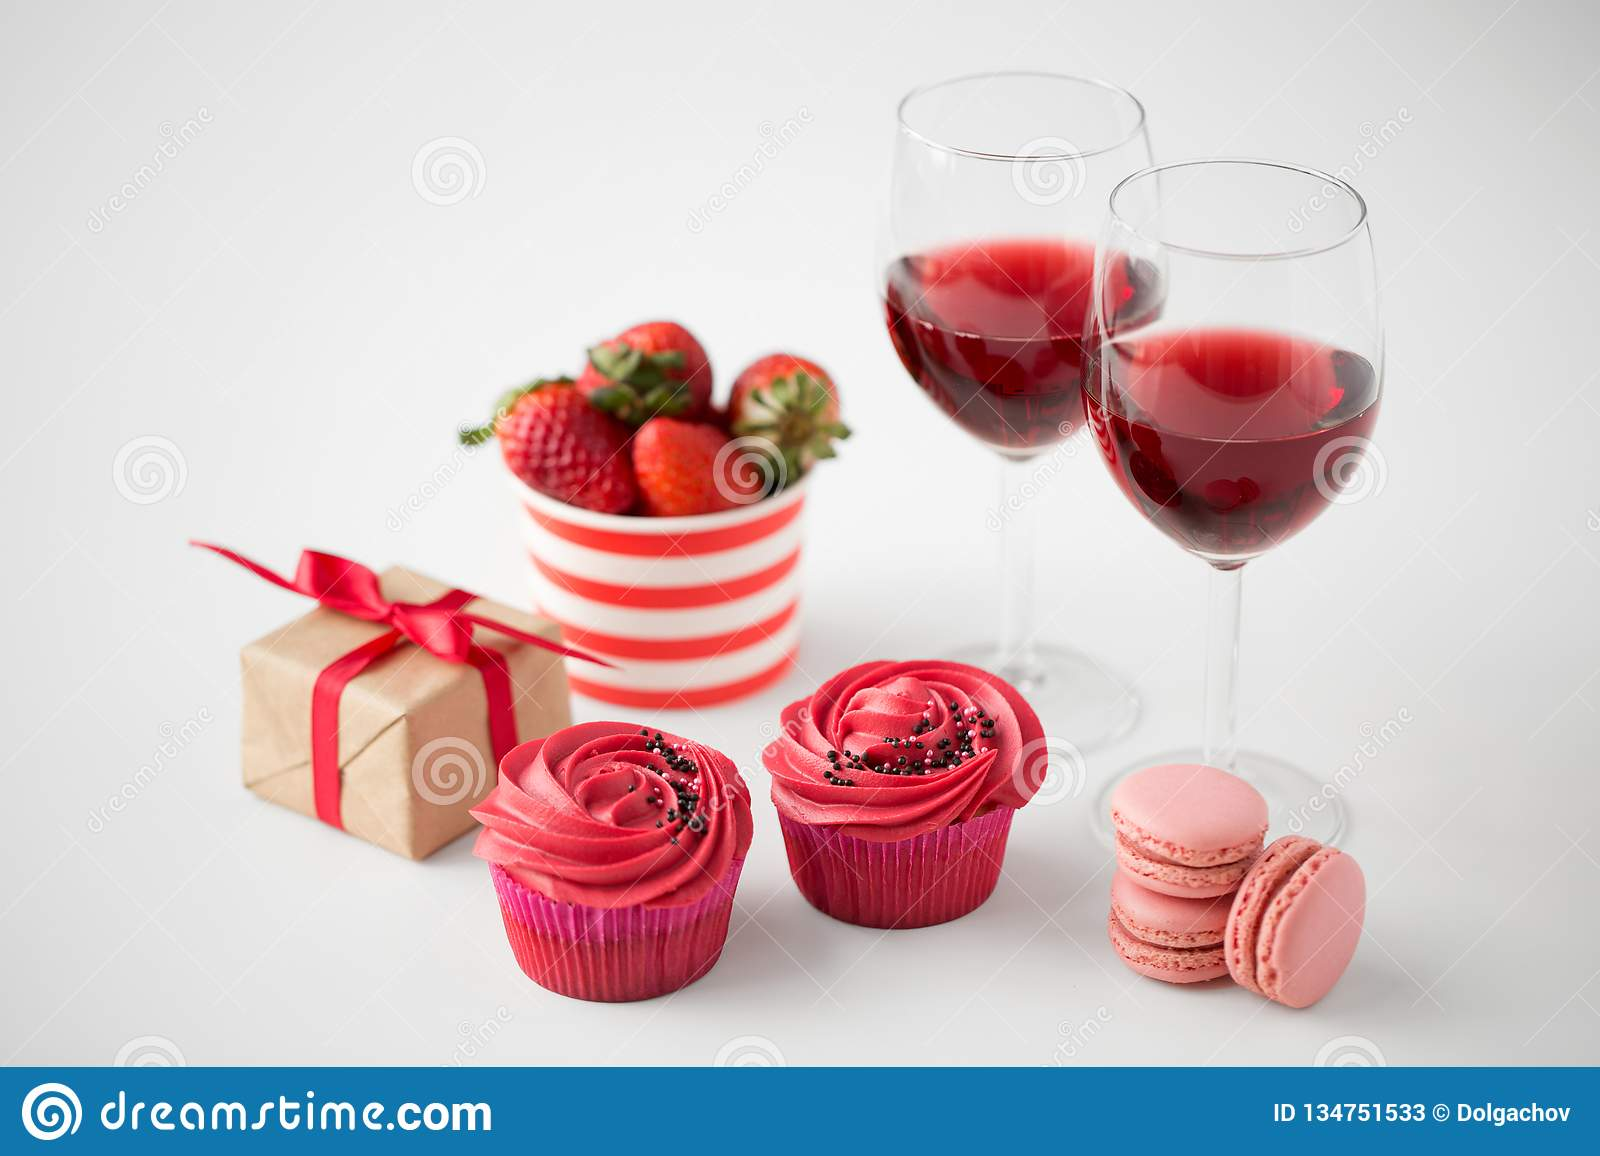 31fd92299ee4 Valentines day and sweets concept - close up of frosted cupcakes, macarons,  strawberries, glasses of red wine and gift box on white background